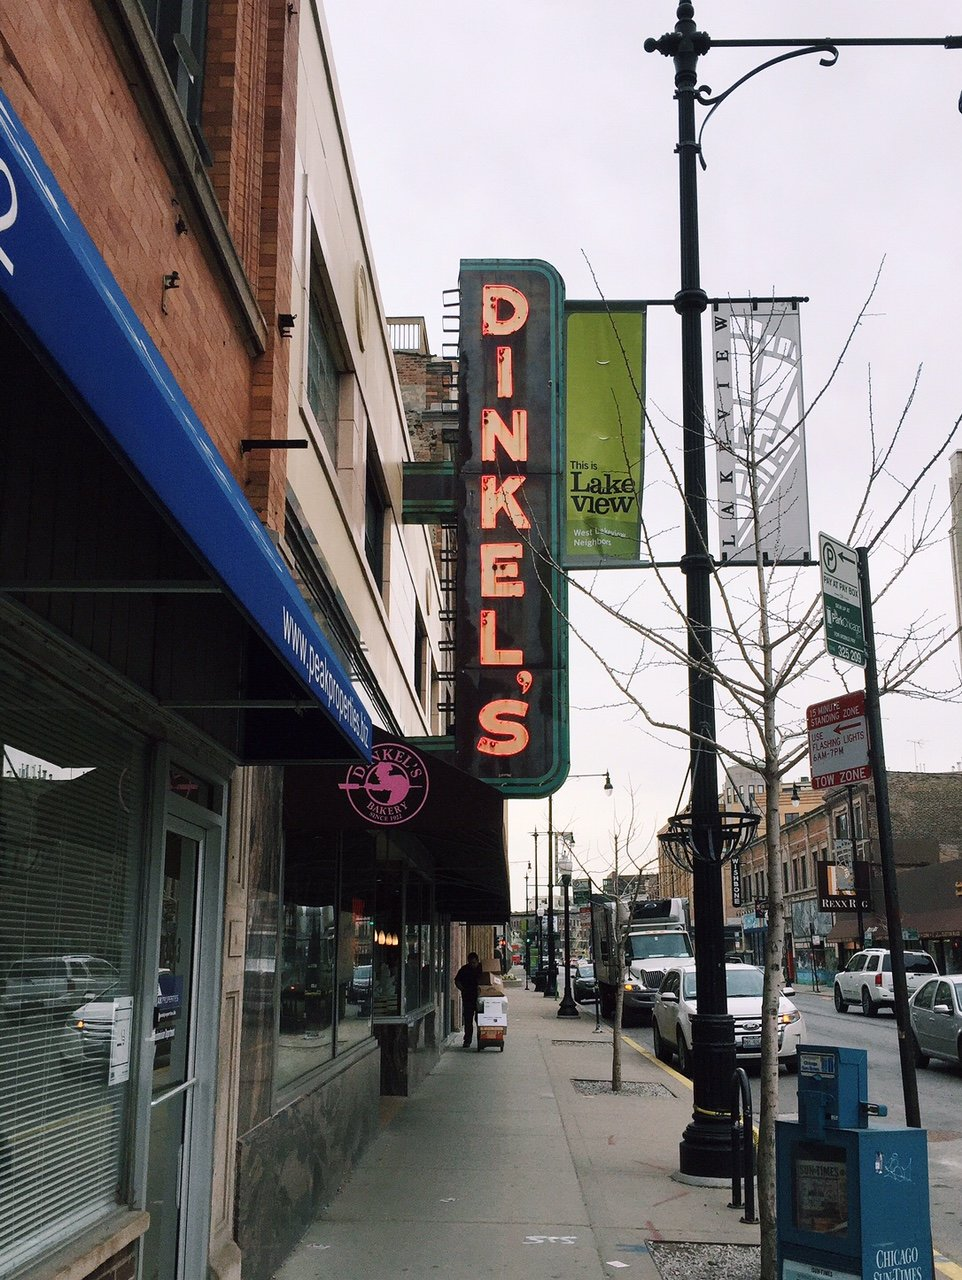 outside of Dinkel's donuts in Chicago